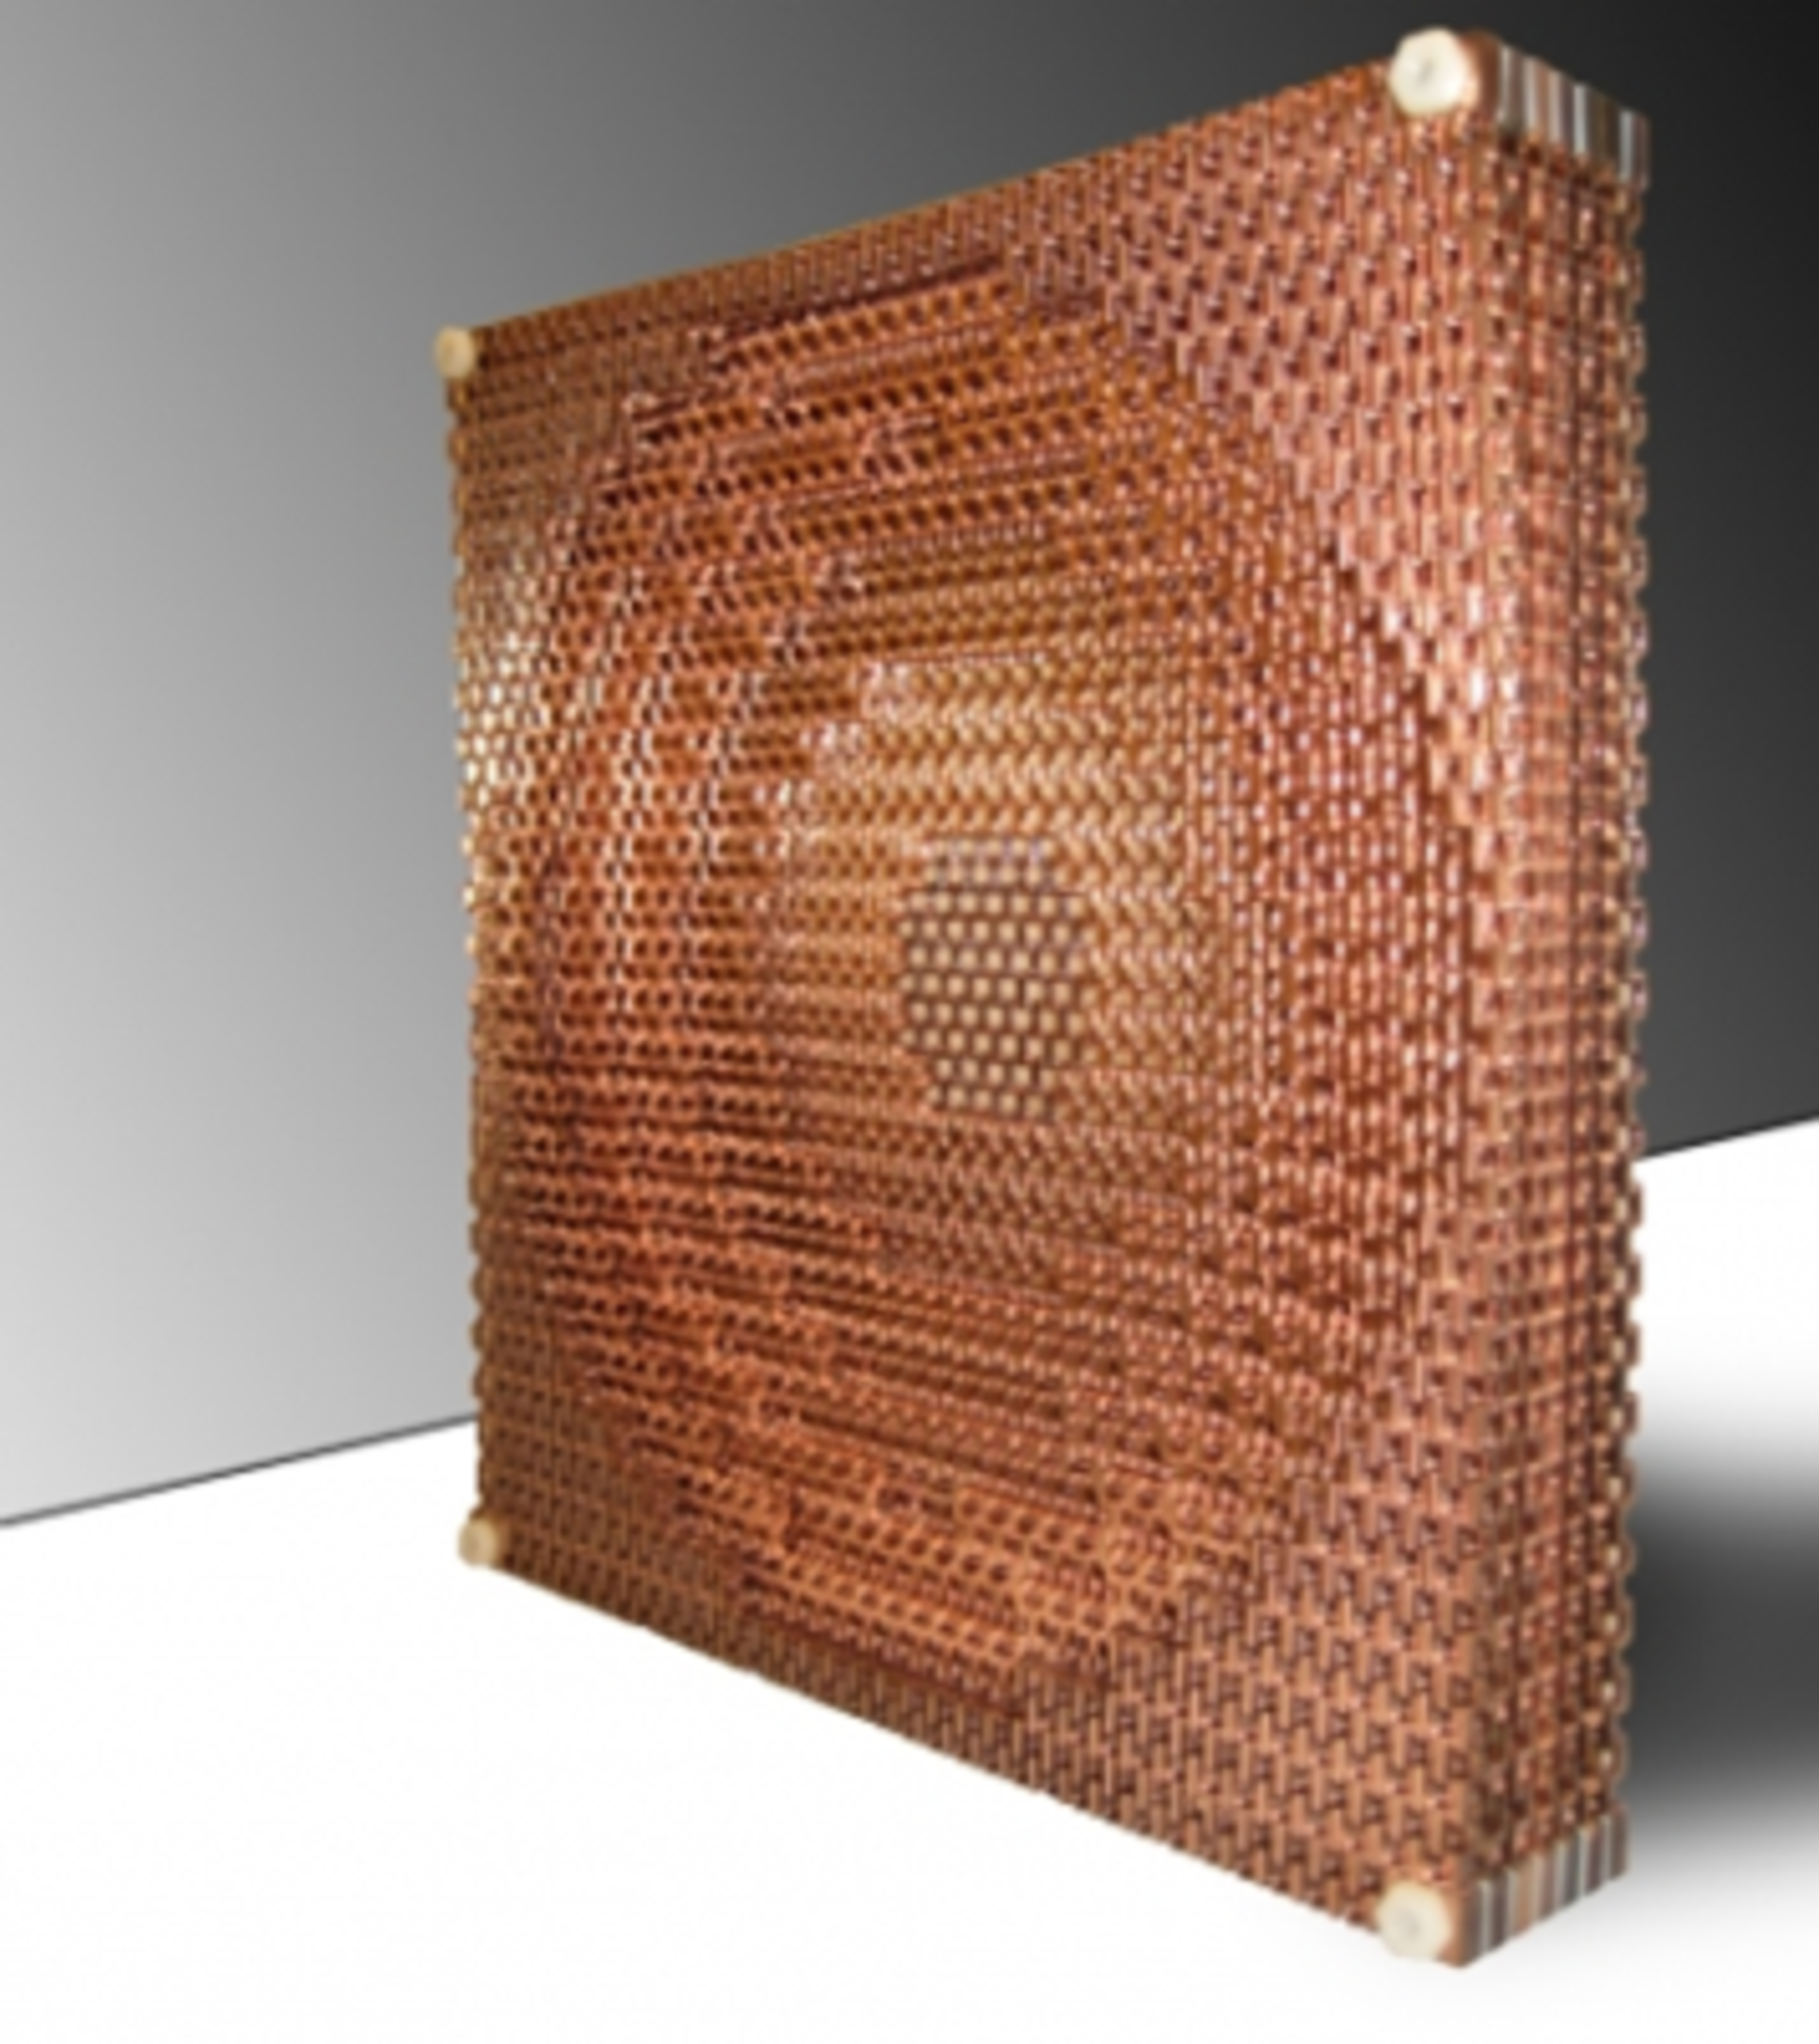 Additive Manufacturing for Frequency and polarization Selective Surfaces